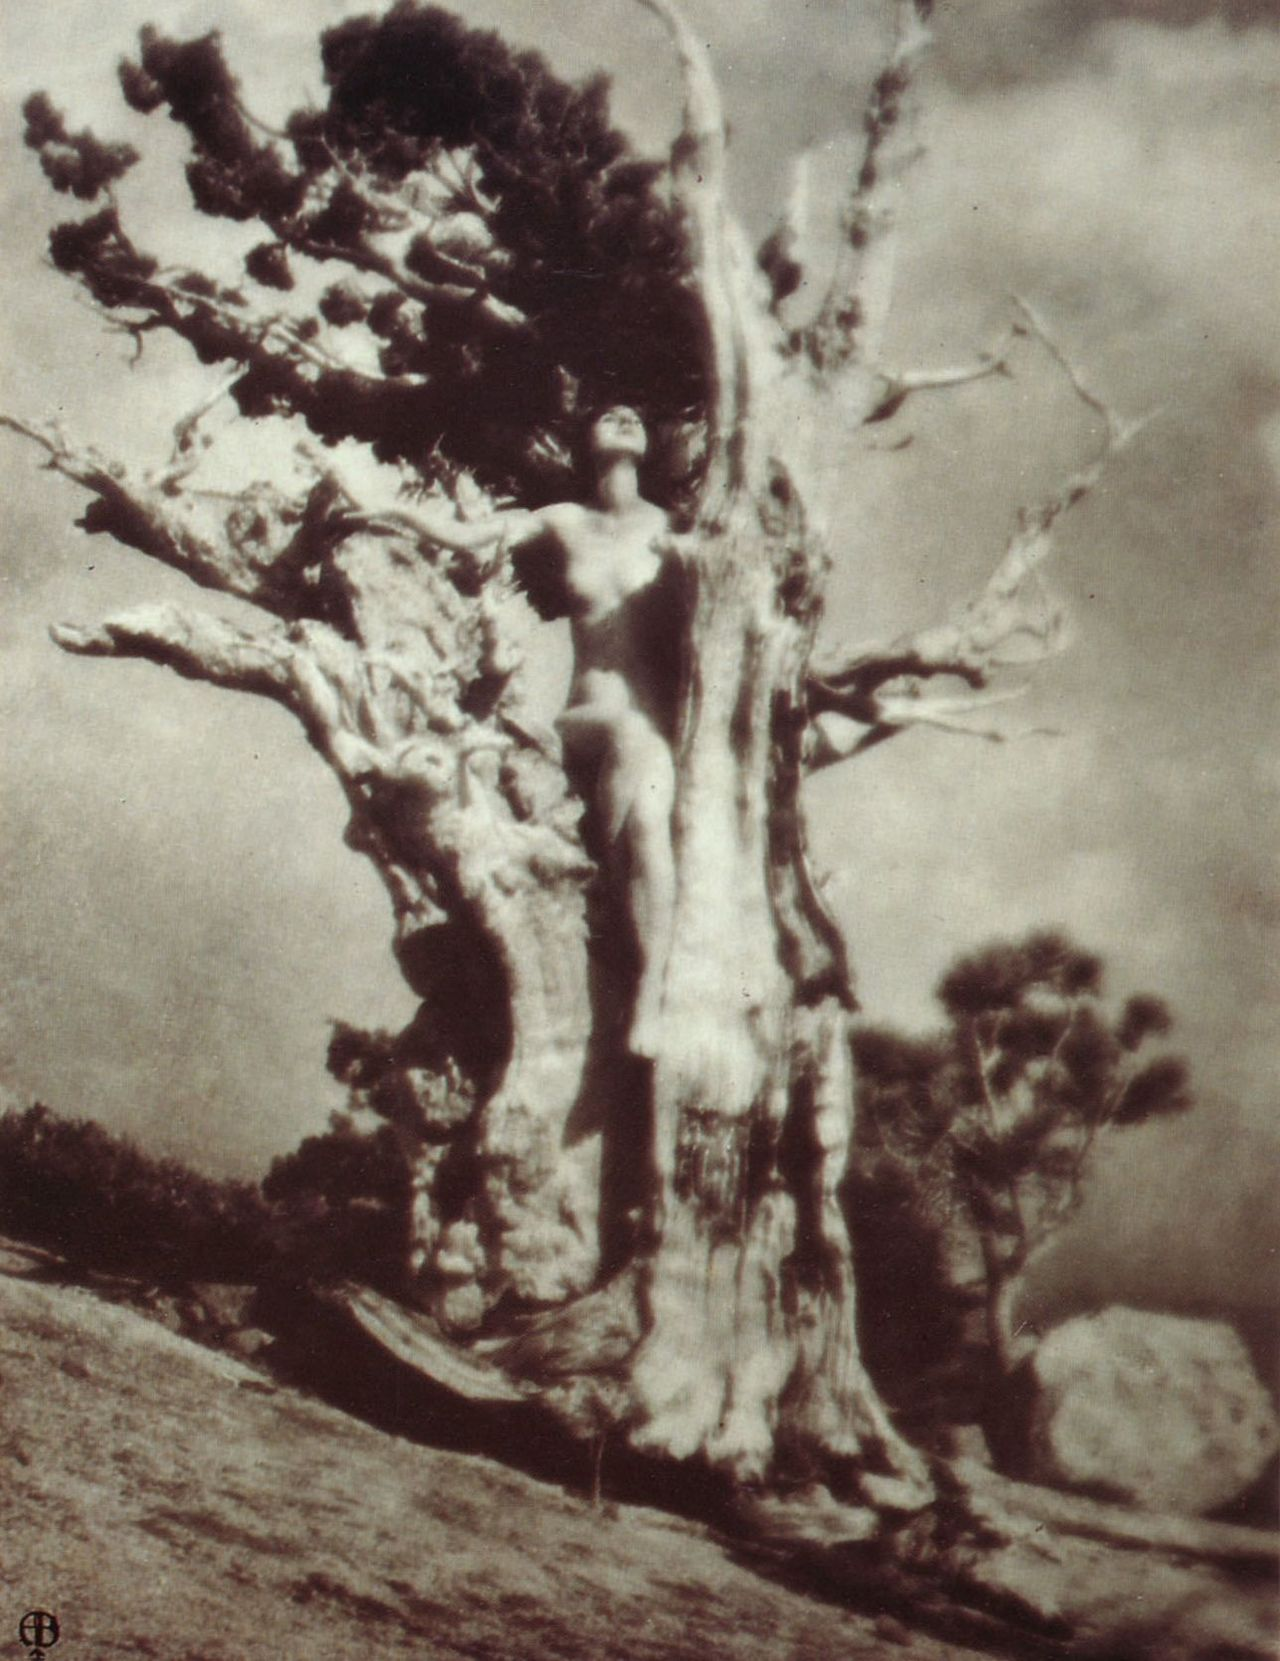 Anne W. Brigman Invictus, 1925 From Pictorialism into Modernism: The Clarence H. White School of Photography